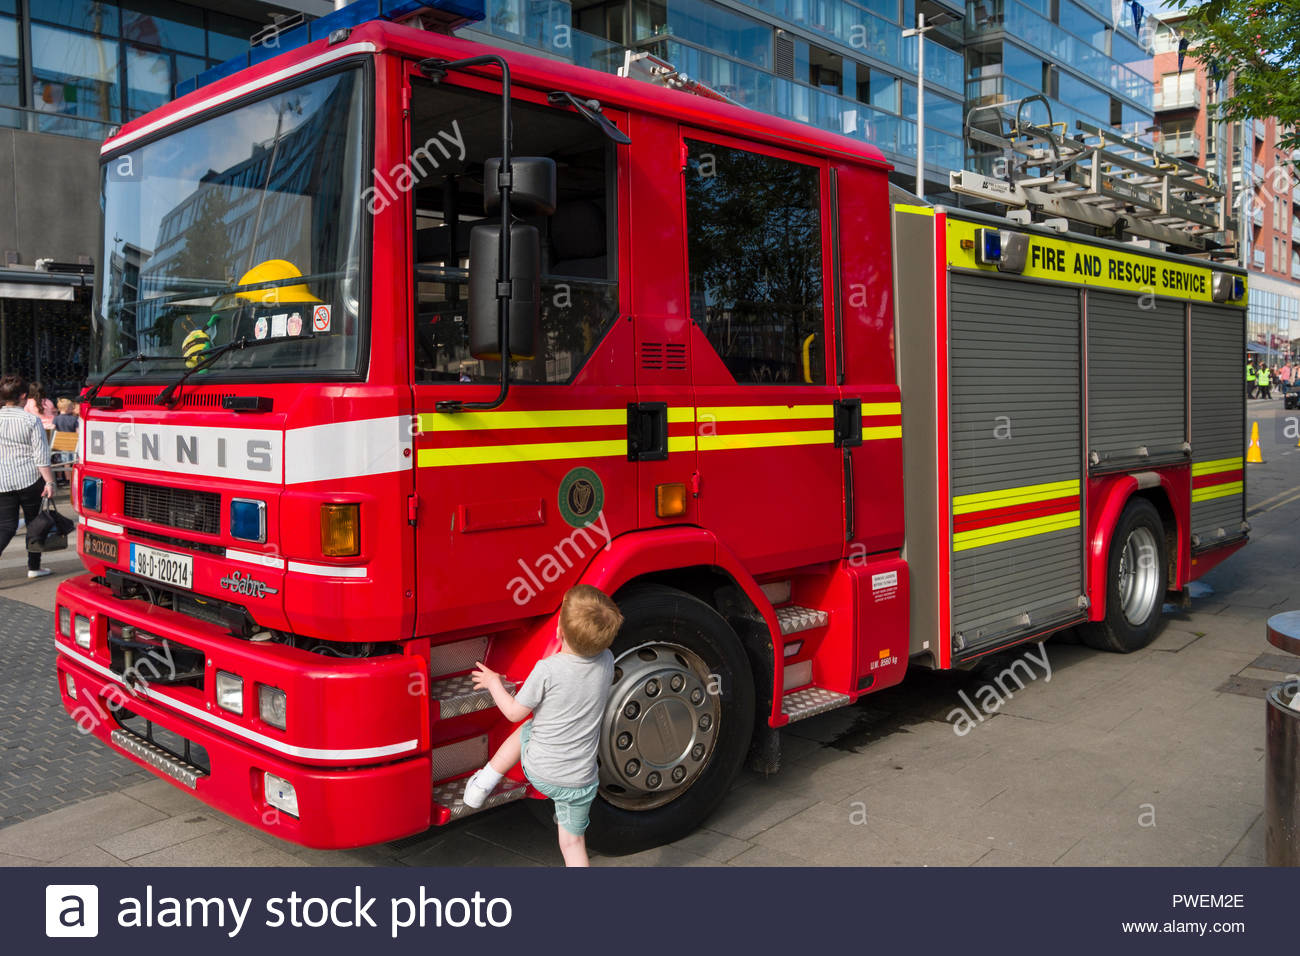 Dennis Saxon Sabre fire and rescue engine, Grand Canal Square, Docklands, Dublin, Leinster, Ireland - Stock Image